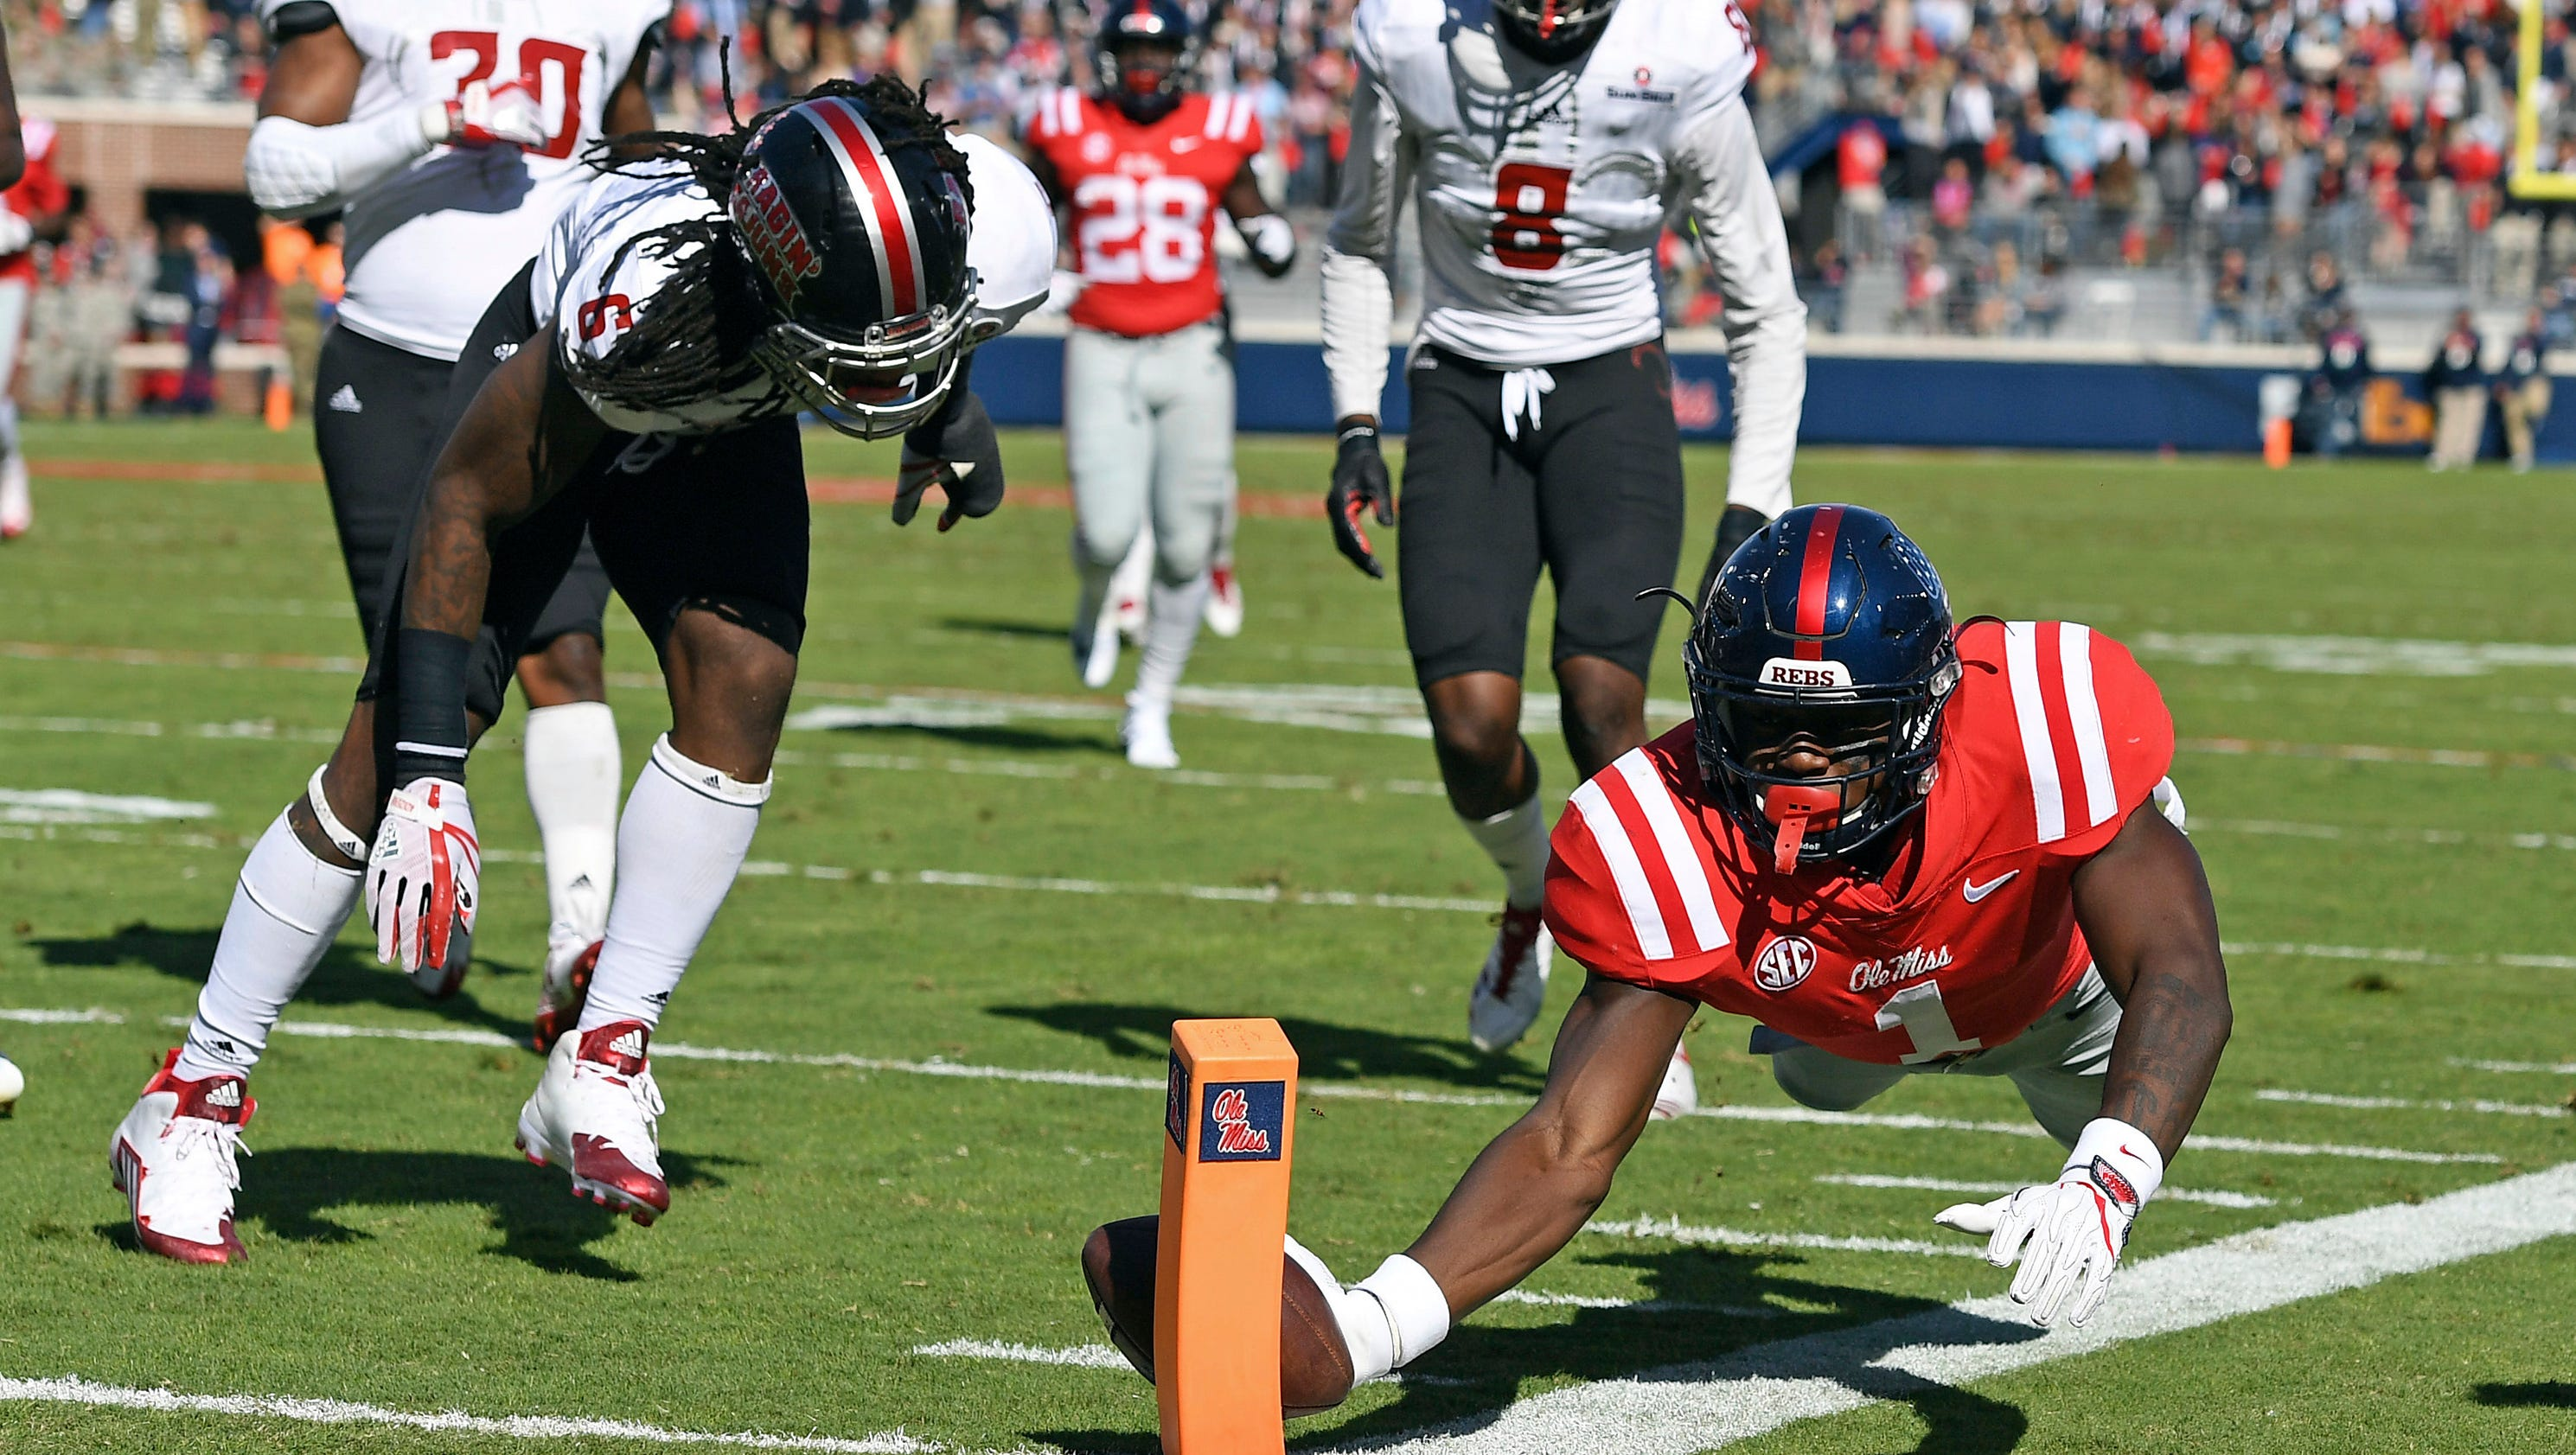 The Ole Miss Exit Survey: The Ragin' Cajuns never had a chance